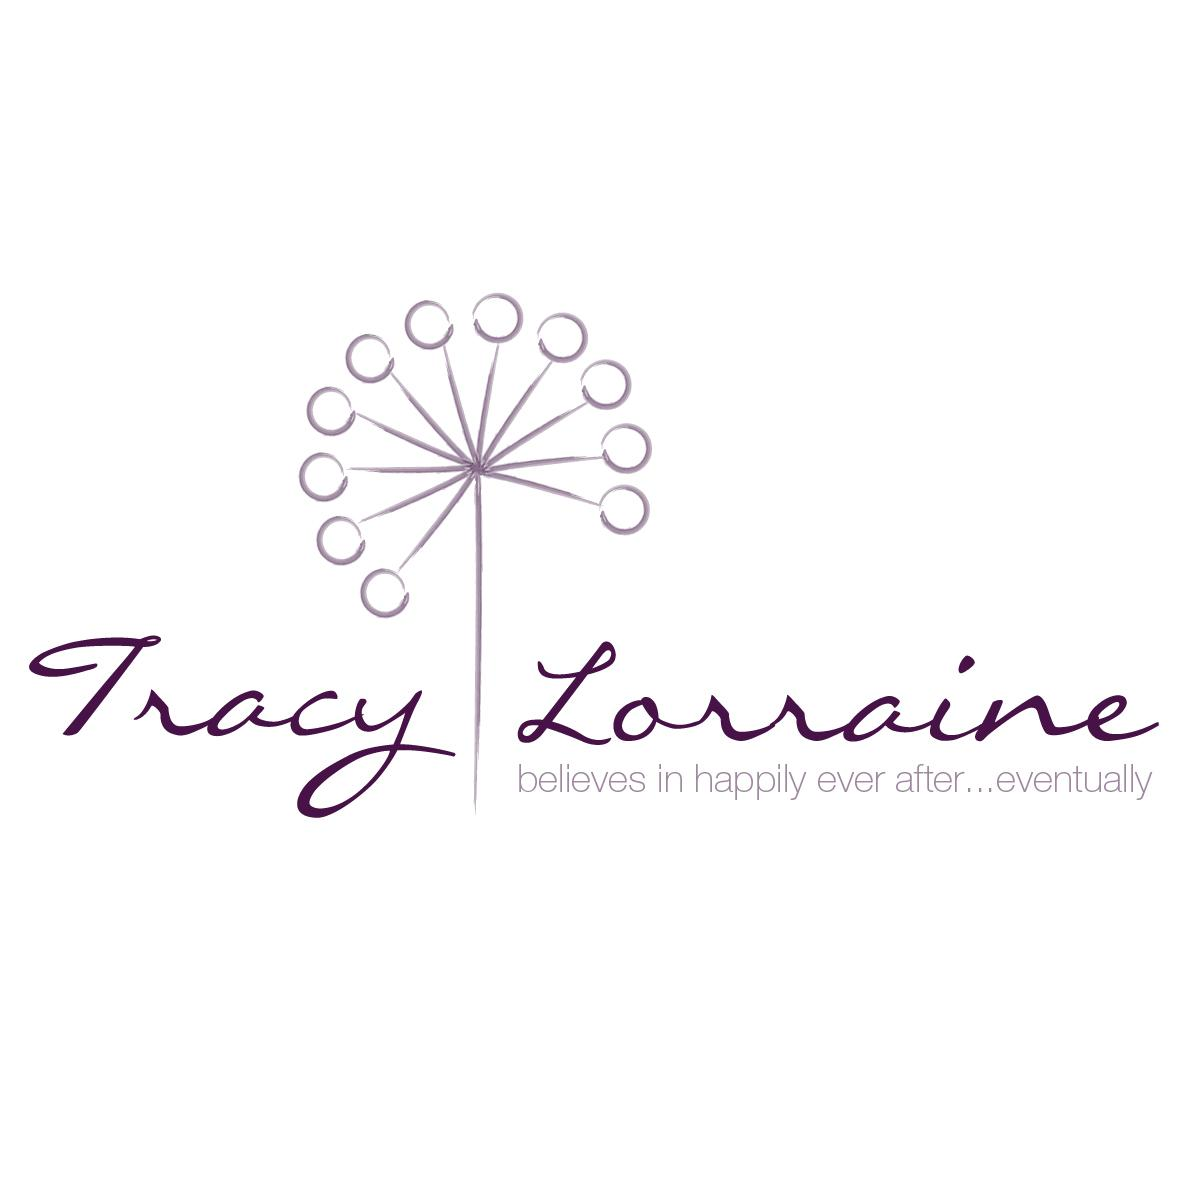 Follow Tracy Lorraine On Booksprout To Hear About Their